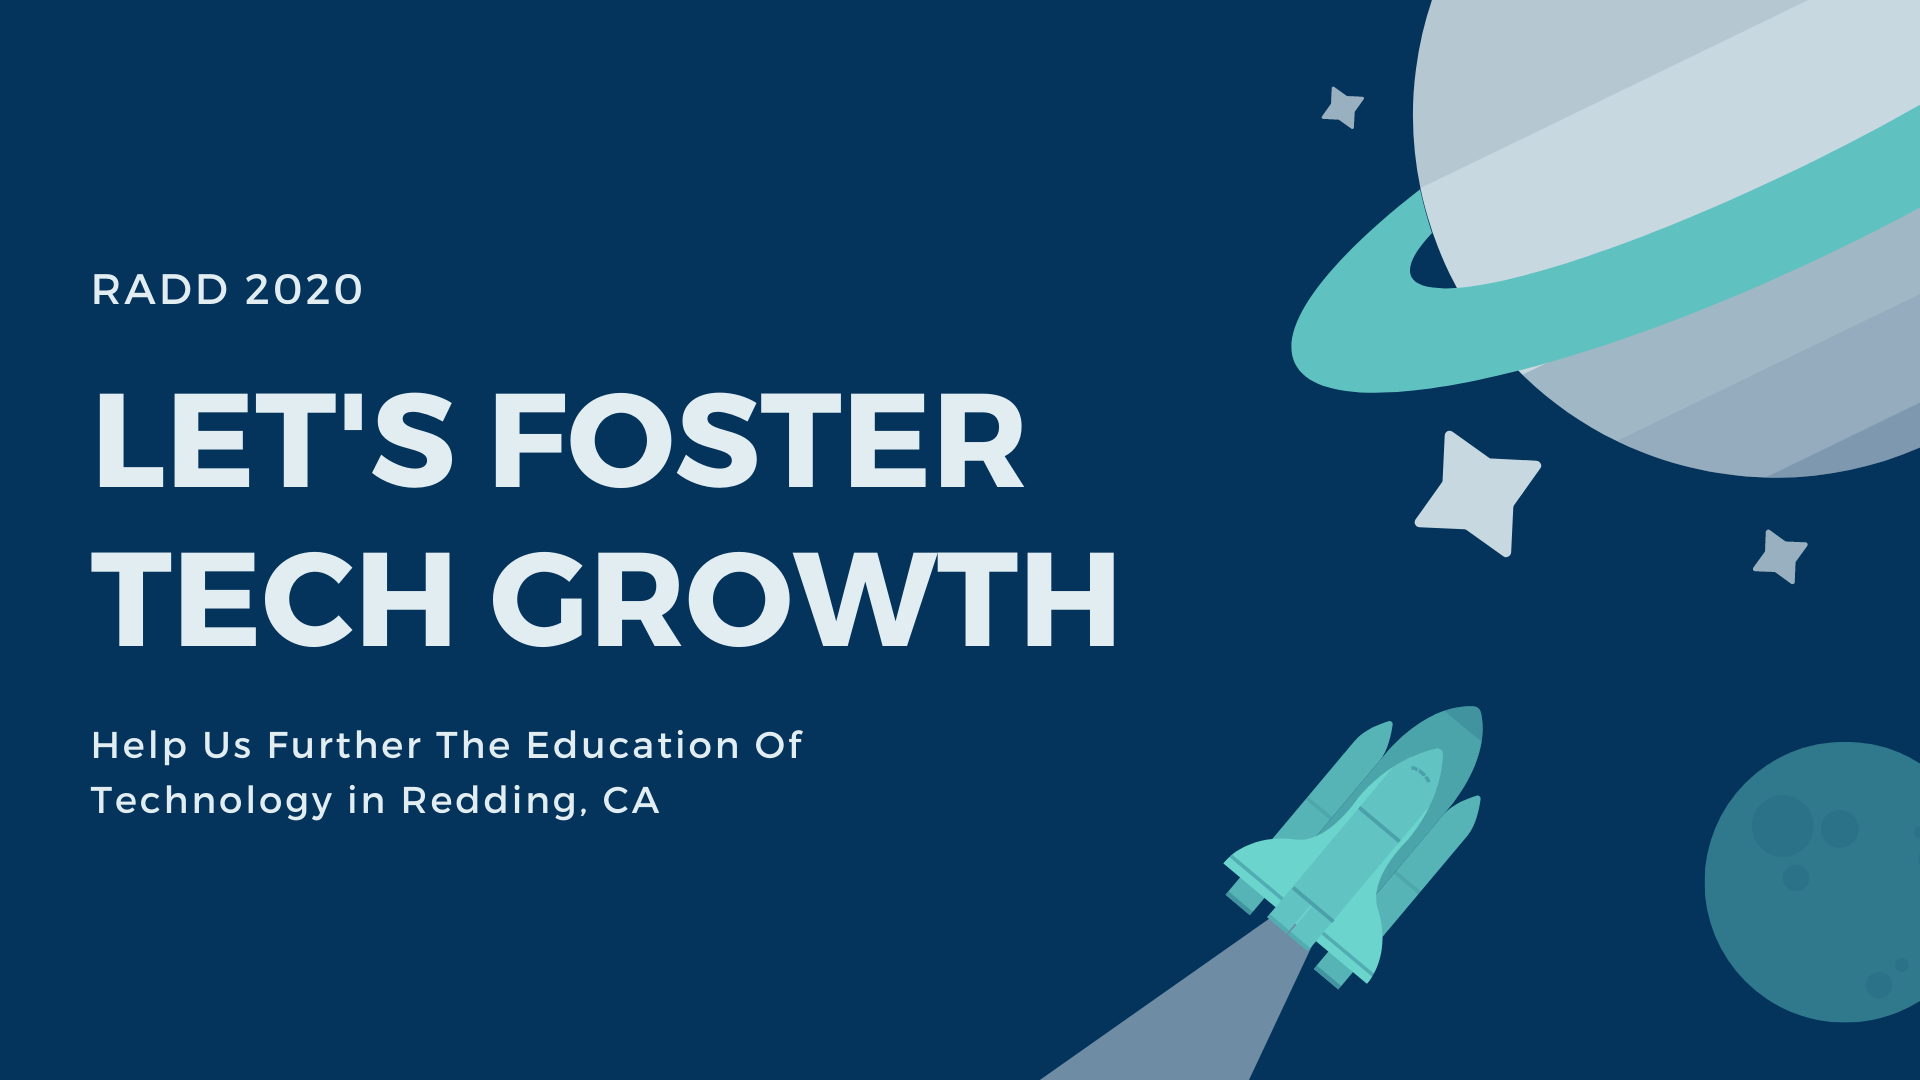 Let's foster tech growth